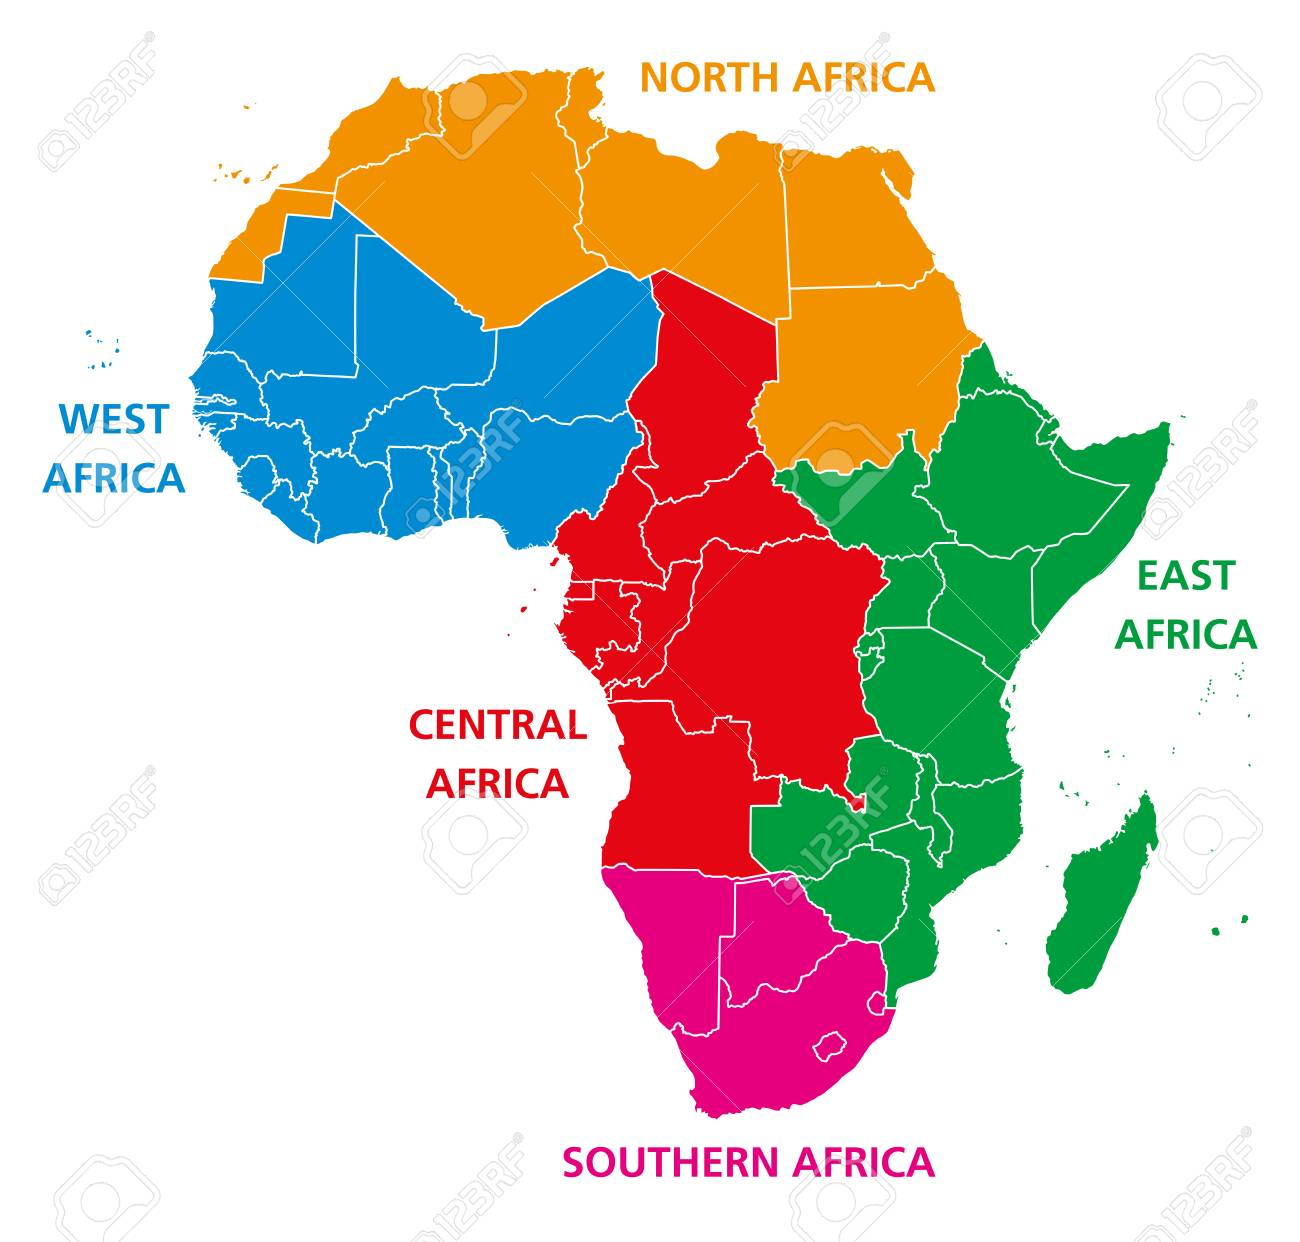 Regions Of Africa Political Map United Nations Geo Scheme With